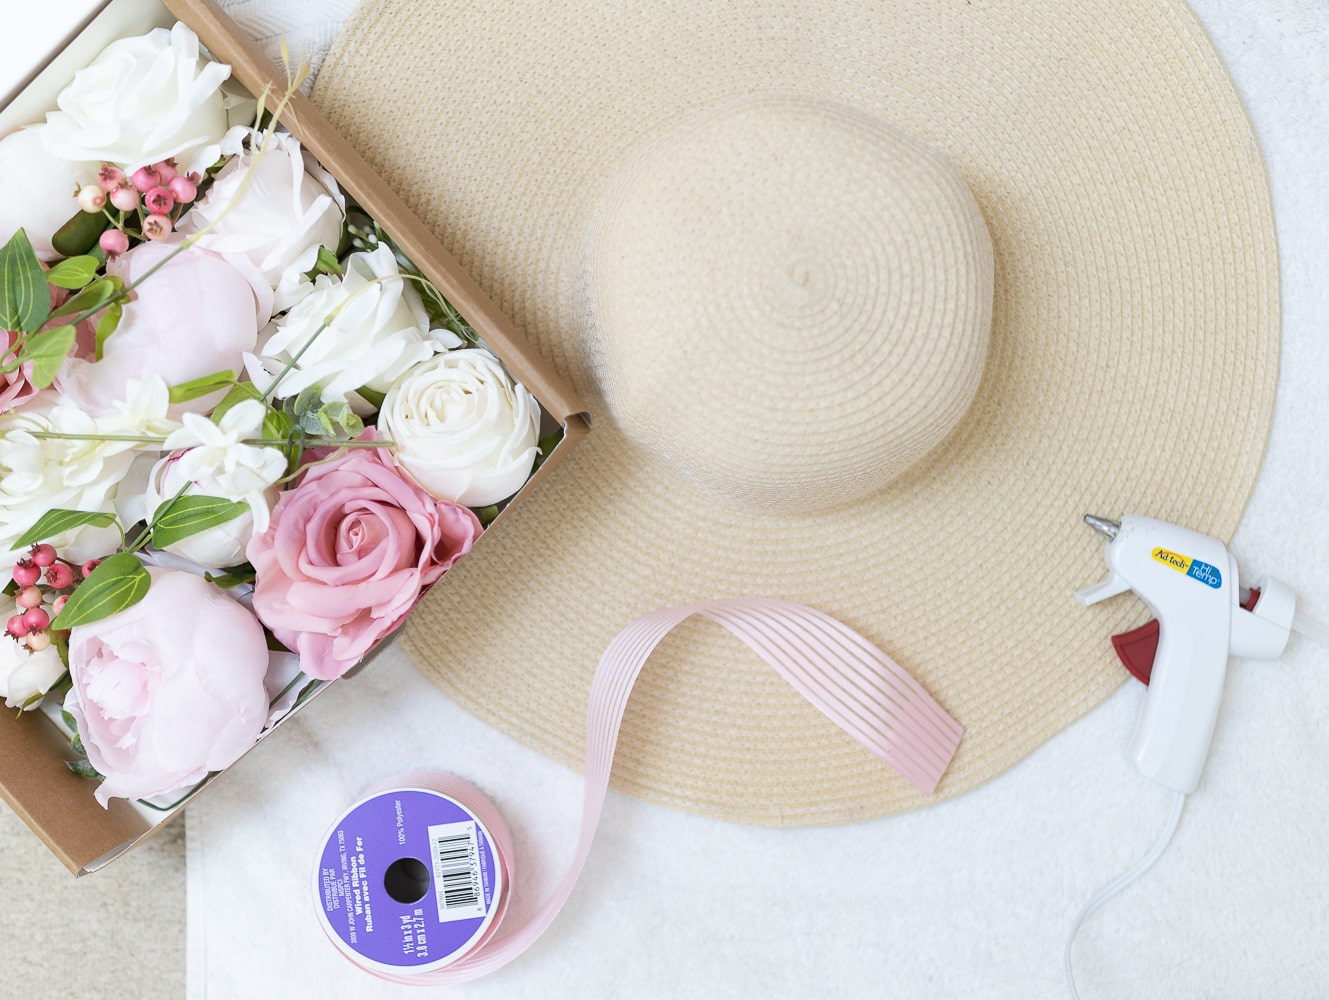 Everything you need to make Kentucky Derby hat on Diary of a Debutante